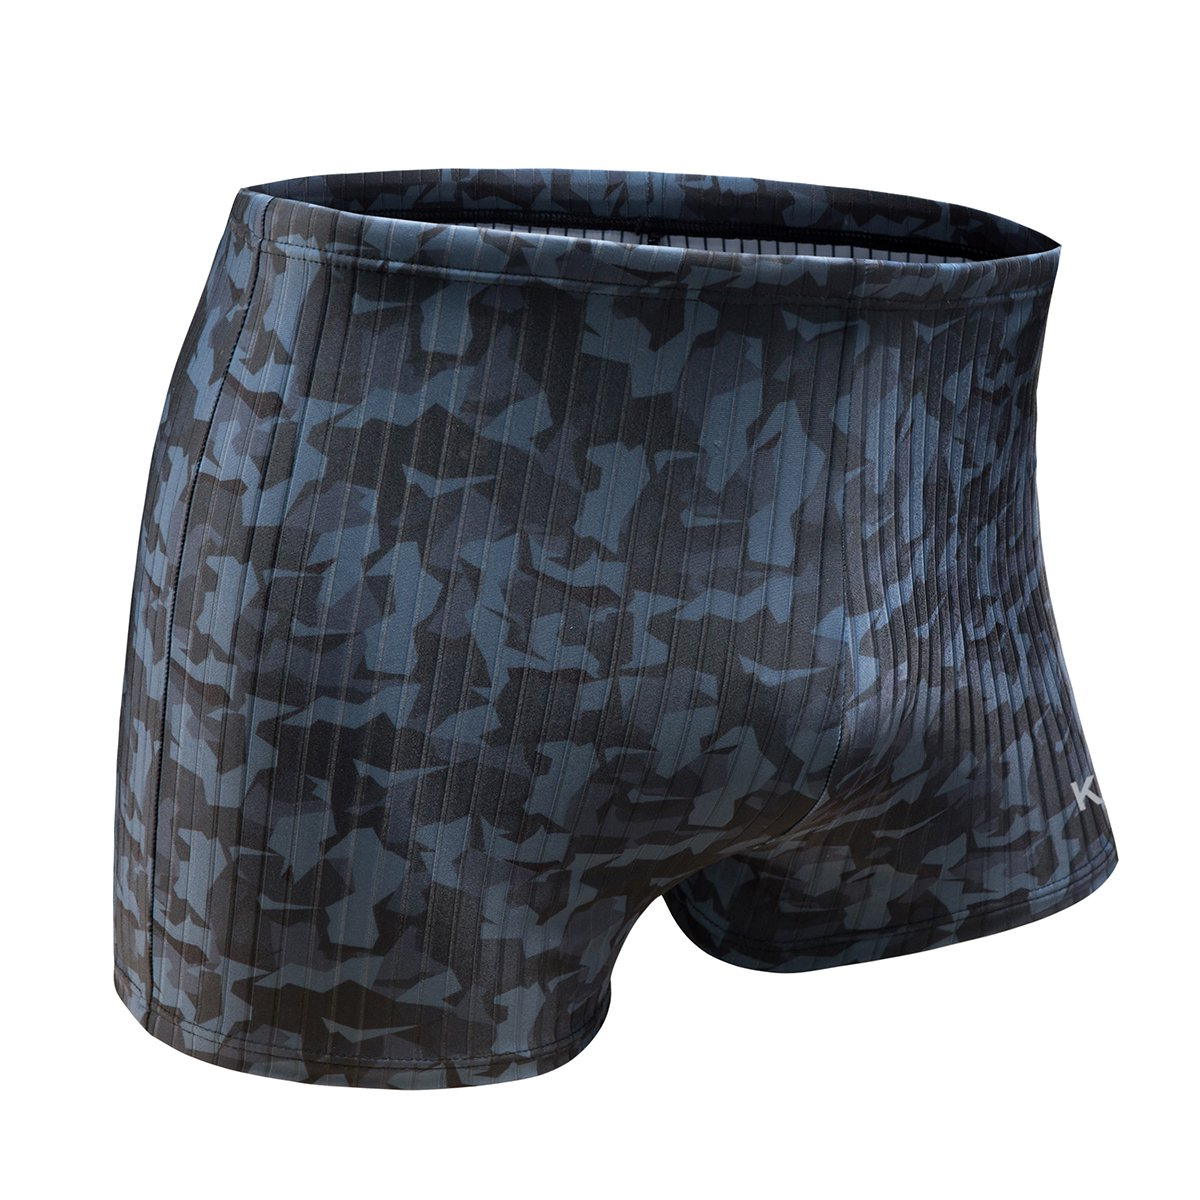 KGKE Swim Boxer Briefs Short Swim Jammer by Camo Racer Mens Square Leg Swimsuit (Grey Camo Strip, Small)